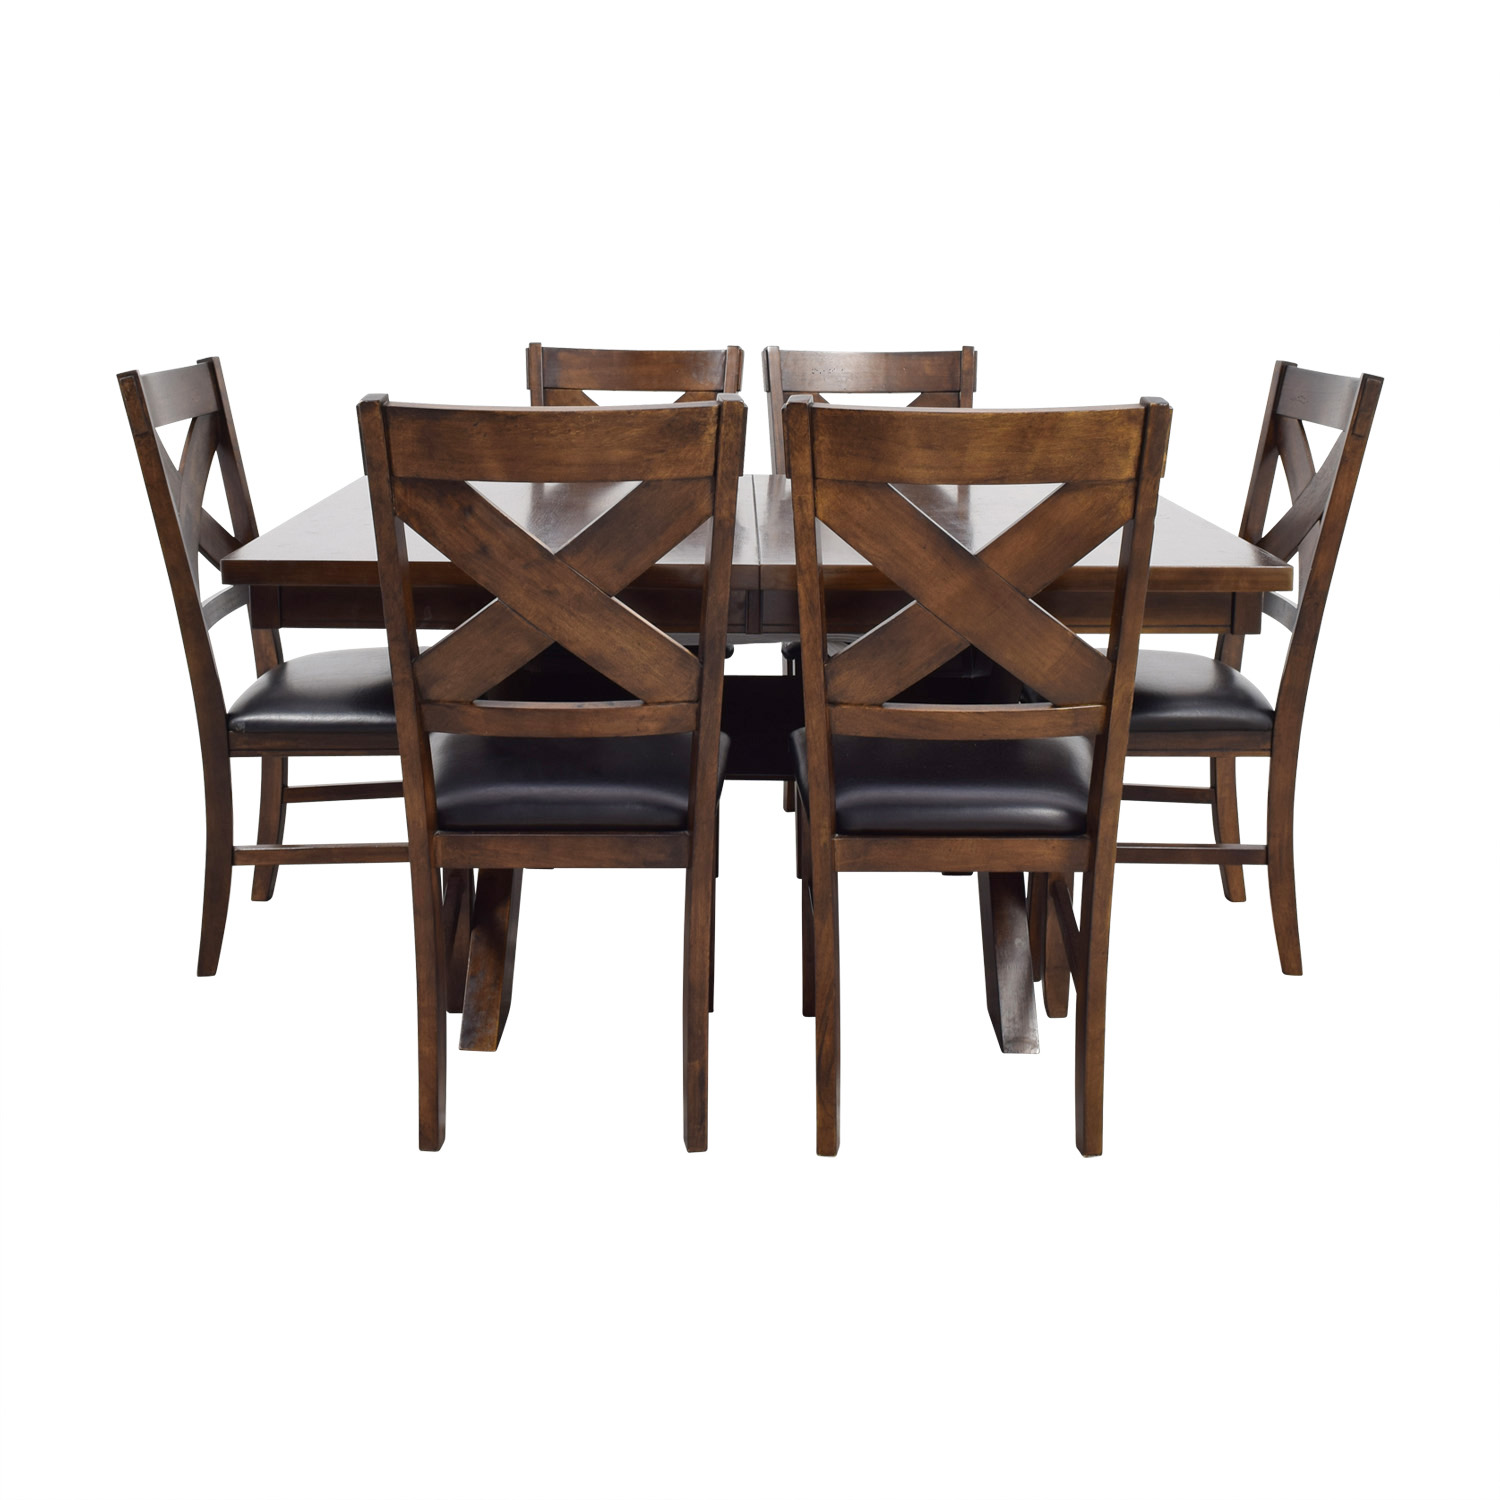 Green River Wood Green River Wood Dining Set with Black Leather Chairs